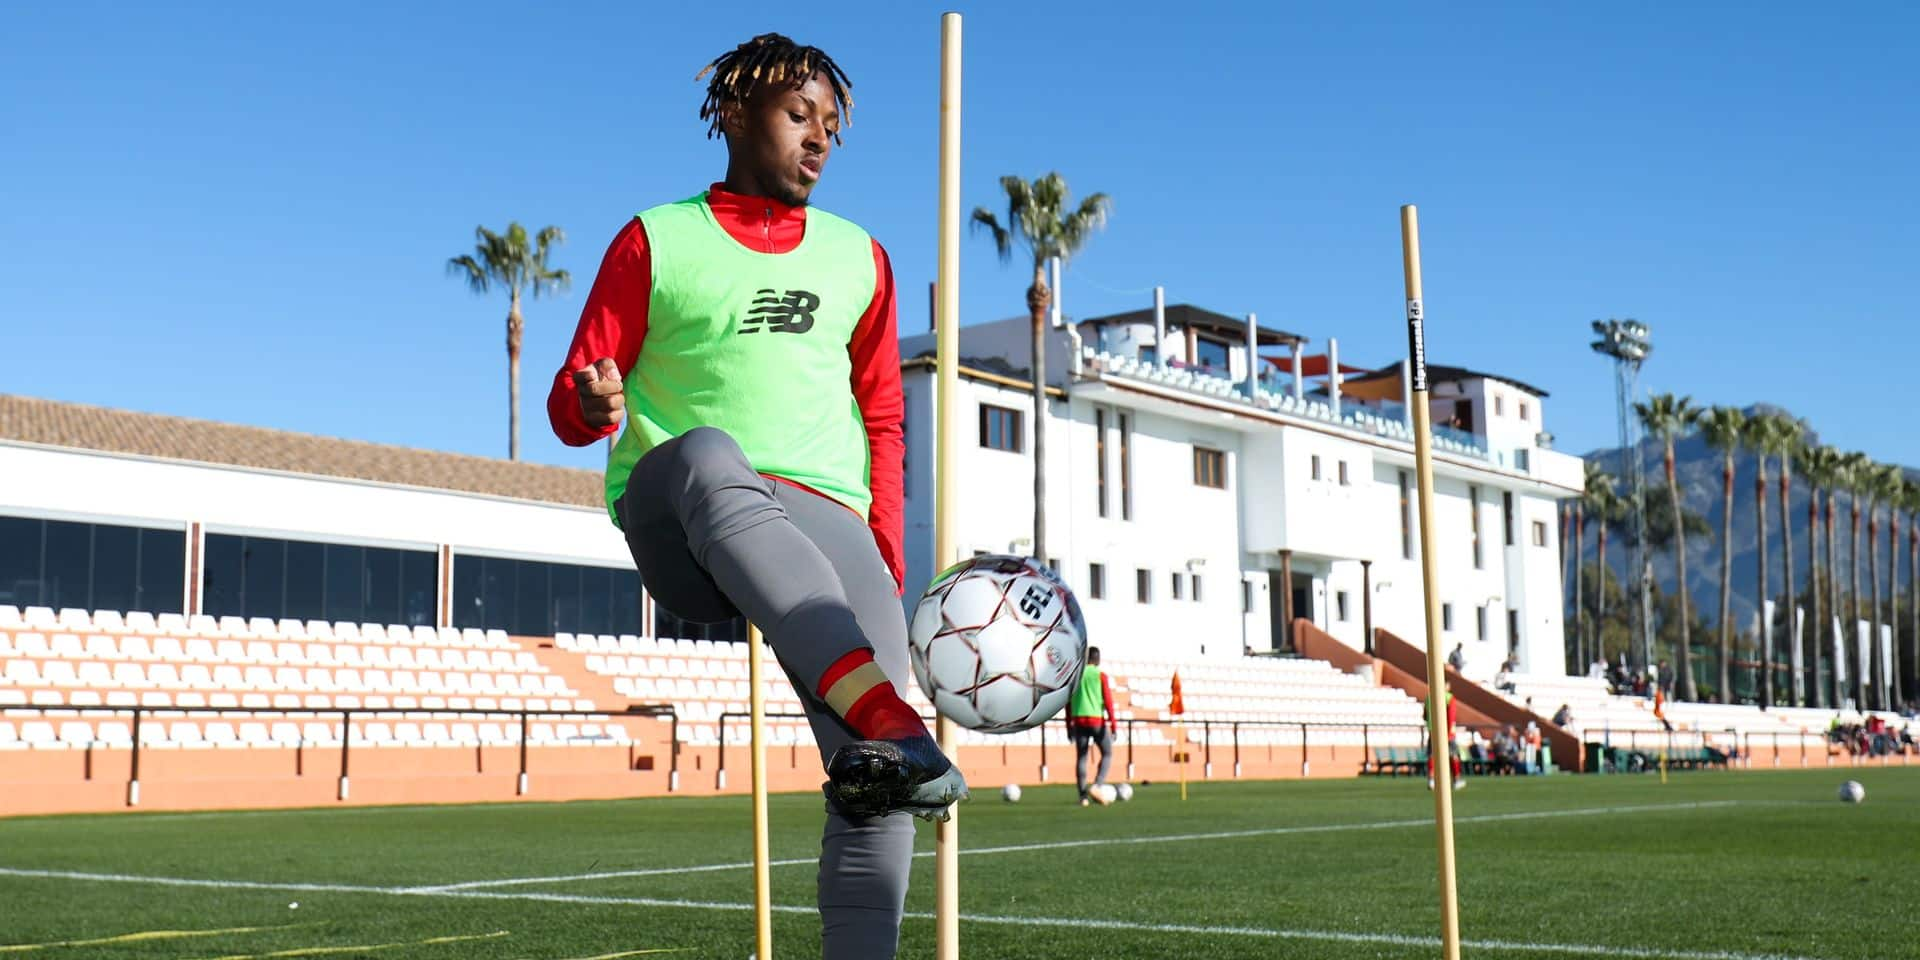 Standard's Samuel Bastien pictured in action during the morning training session the sixth day of the winter training camp of Belgian first division soccer team Standard de Liege, in Marbella, Spain, Wednesday 09 January 2019. BELGA PHOTO VIRGINIE LEFOUR